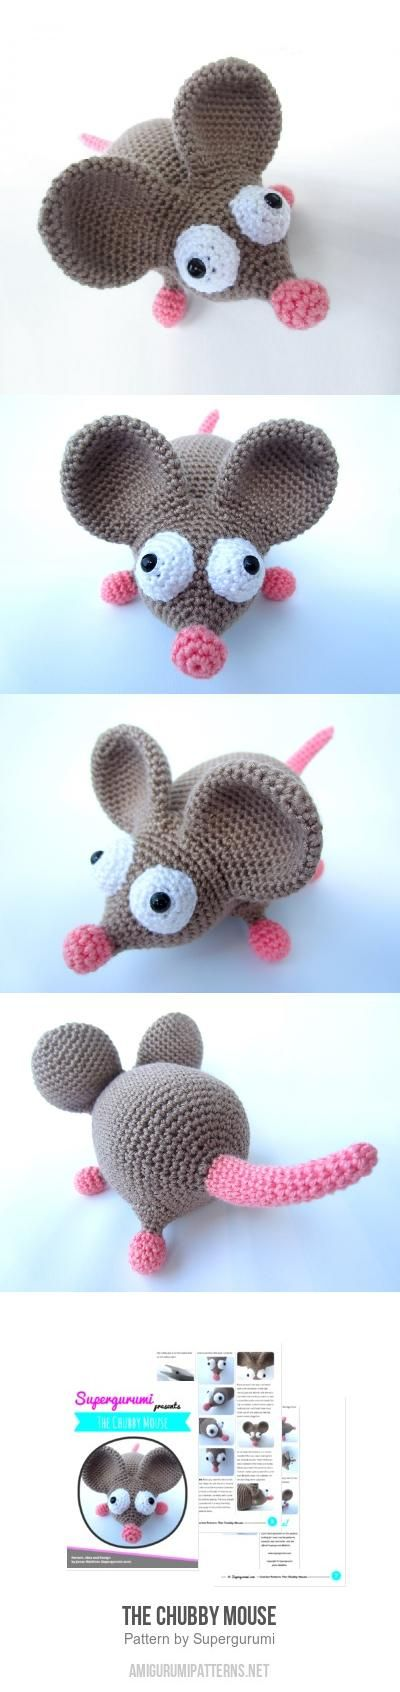 The Chubby Mouse amigurumi pattern